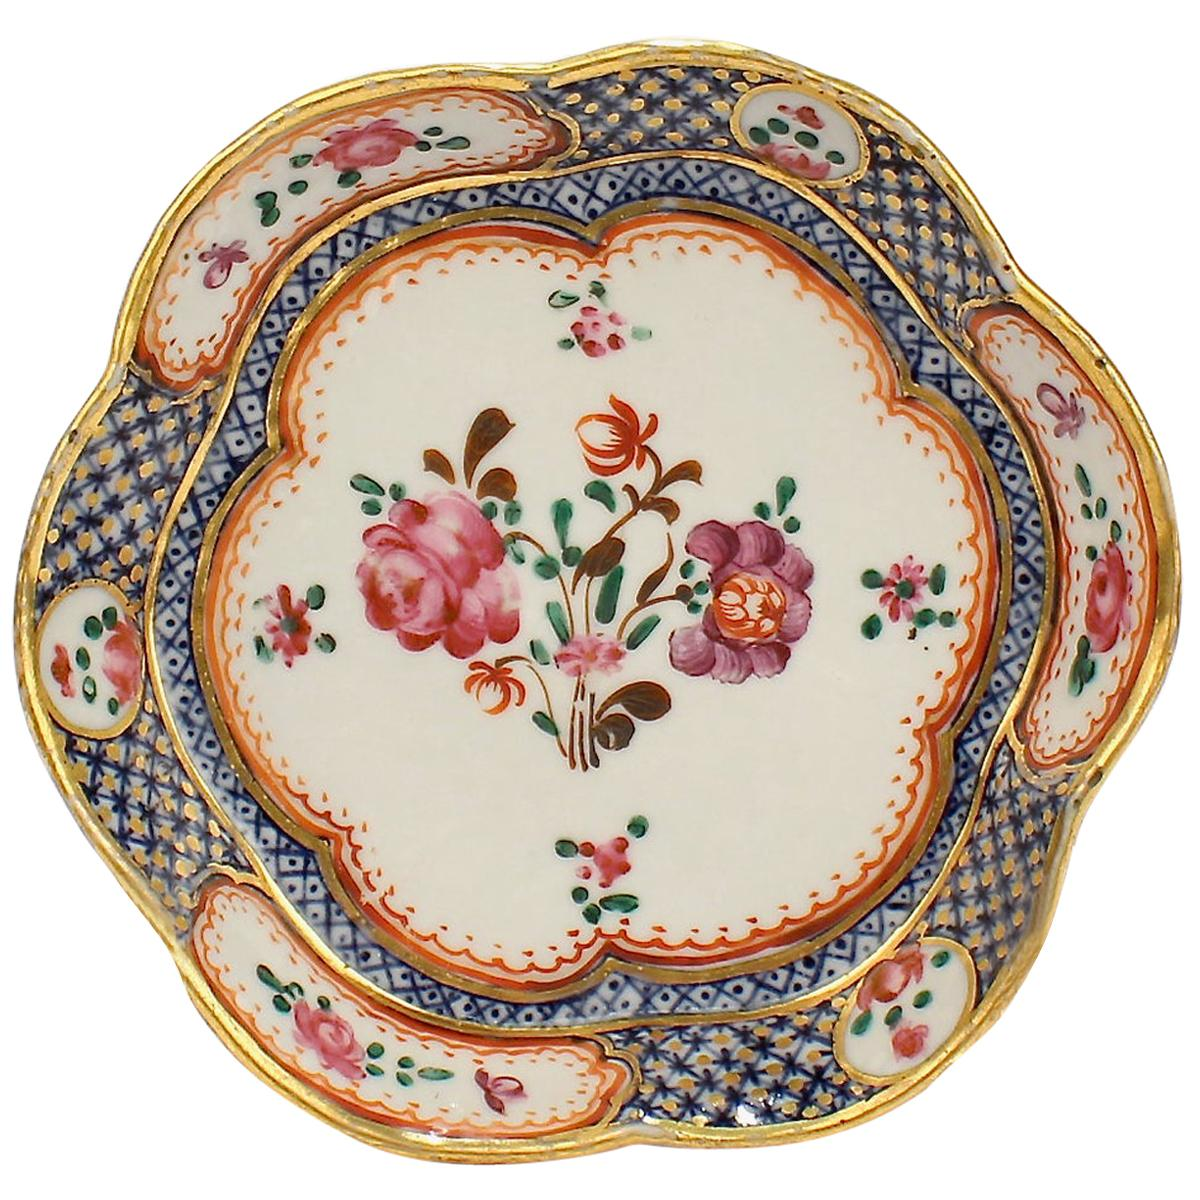 Antique Famille Rose Chinese Export Porcelain Bowl or Dish